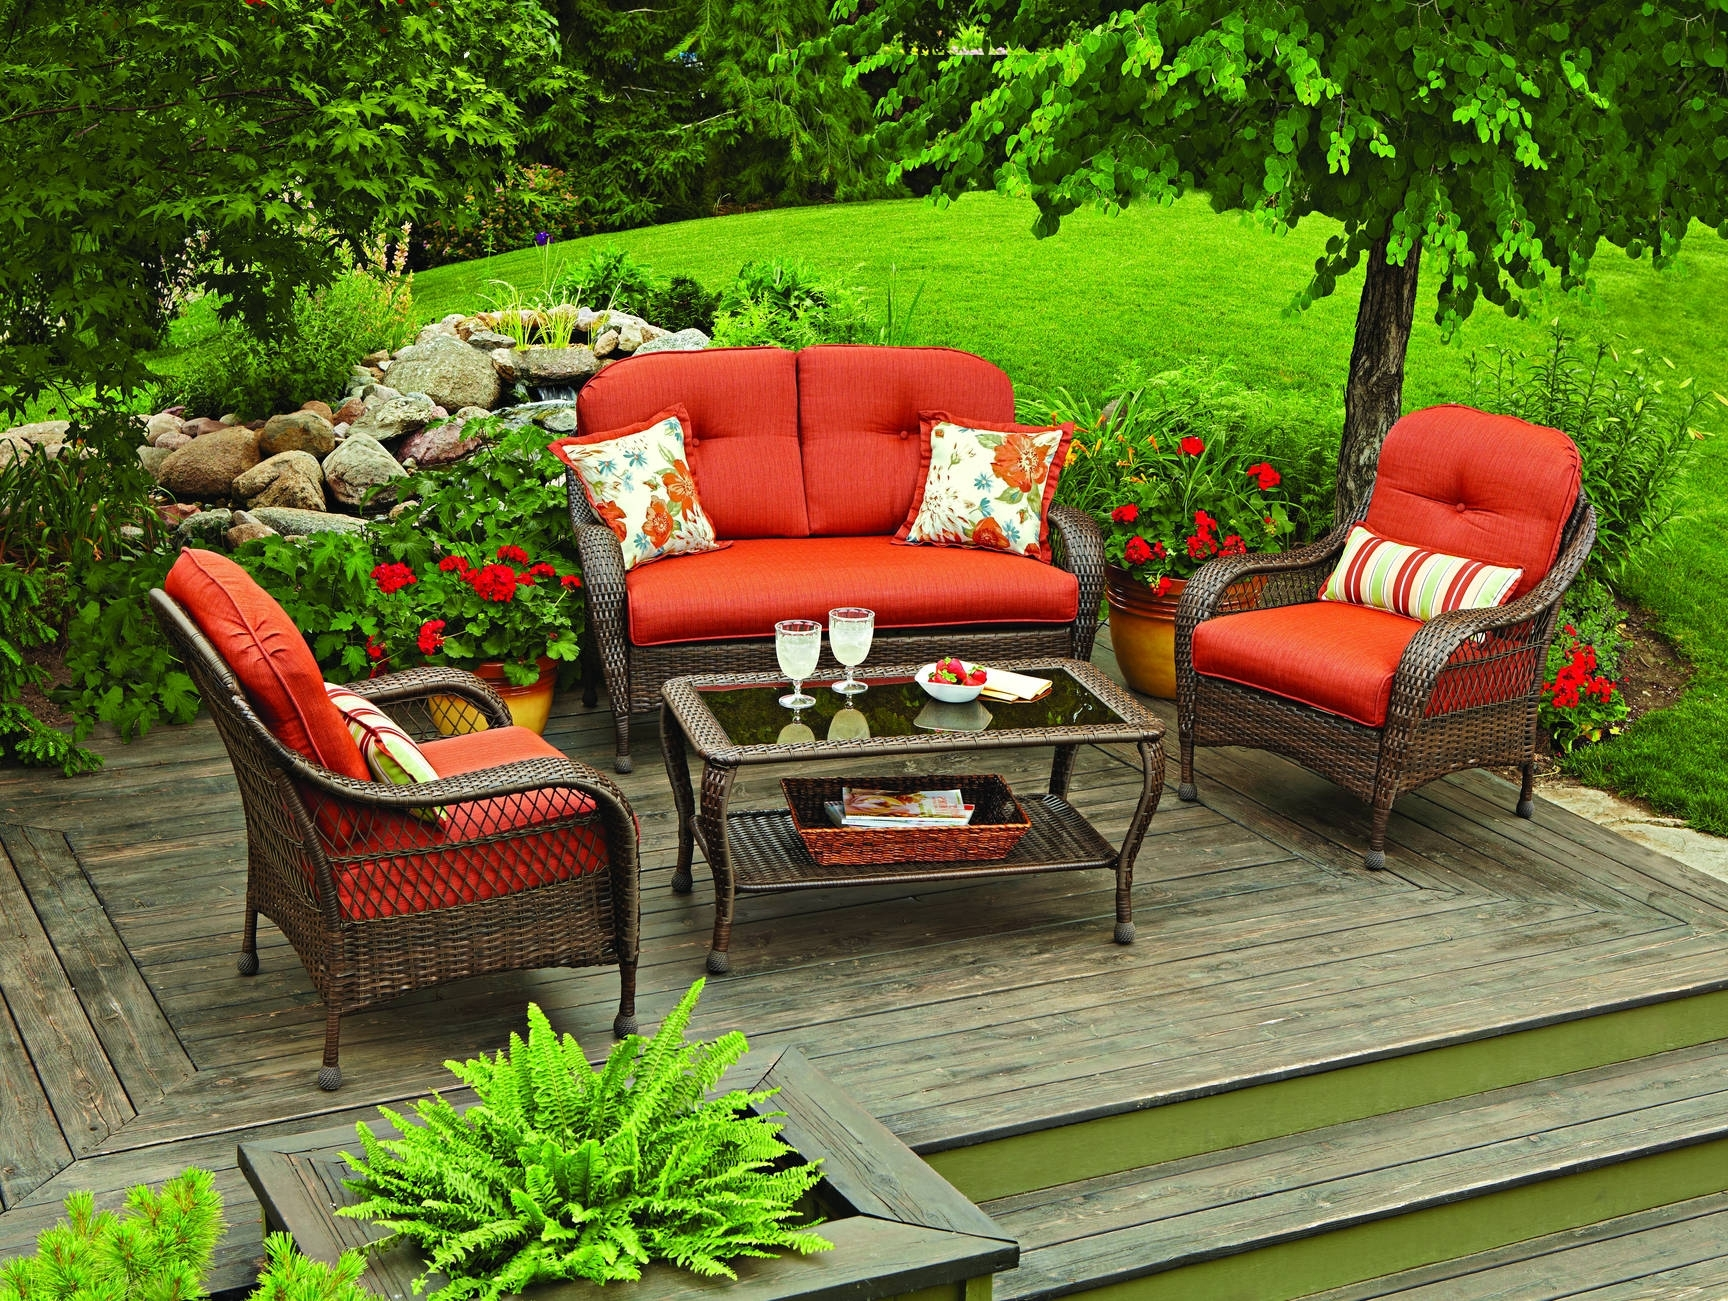 2018 4 Piece Patio Conversation Sets With Better Homes And Gardens Azalea Ridge 4 Piece Patio Conversation Set (View 9 of 20)